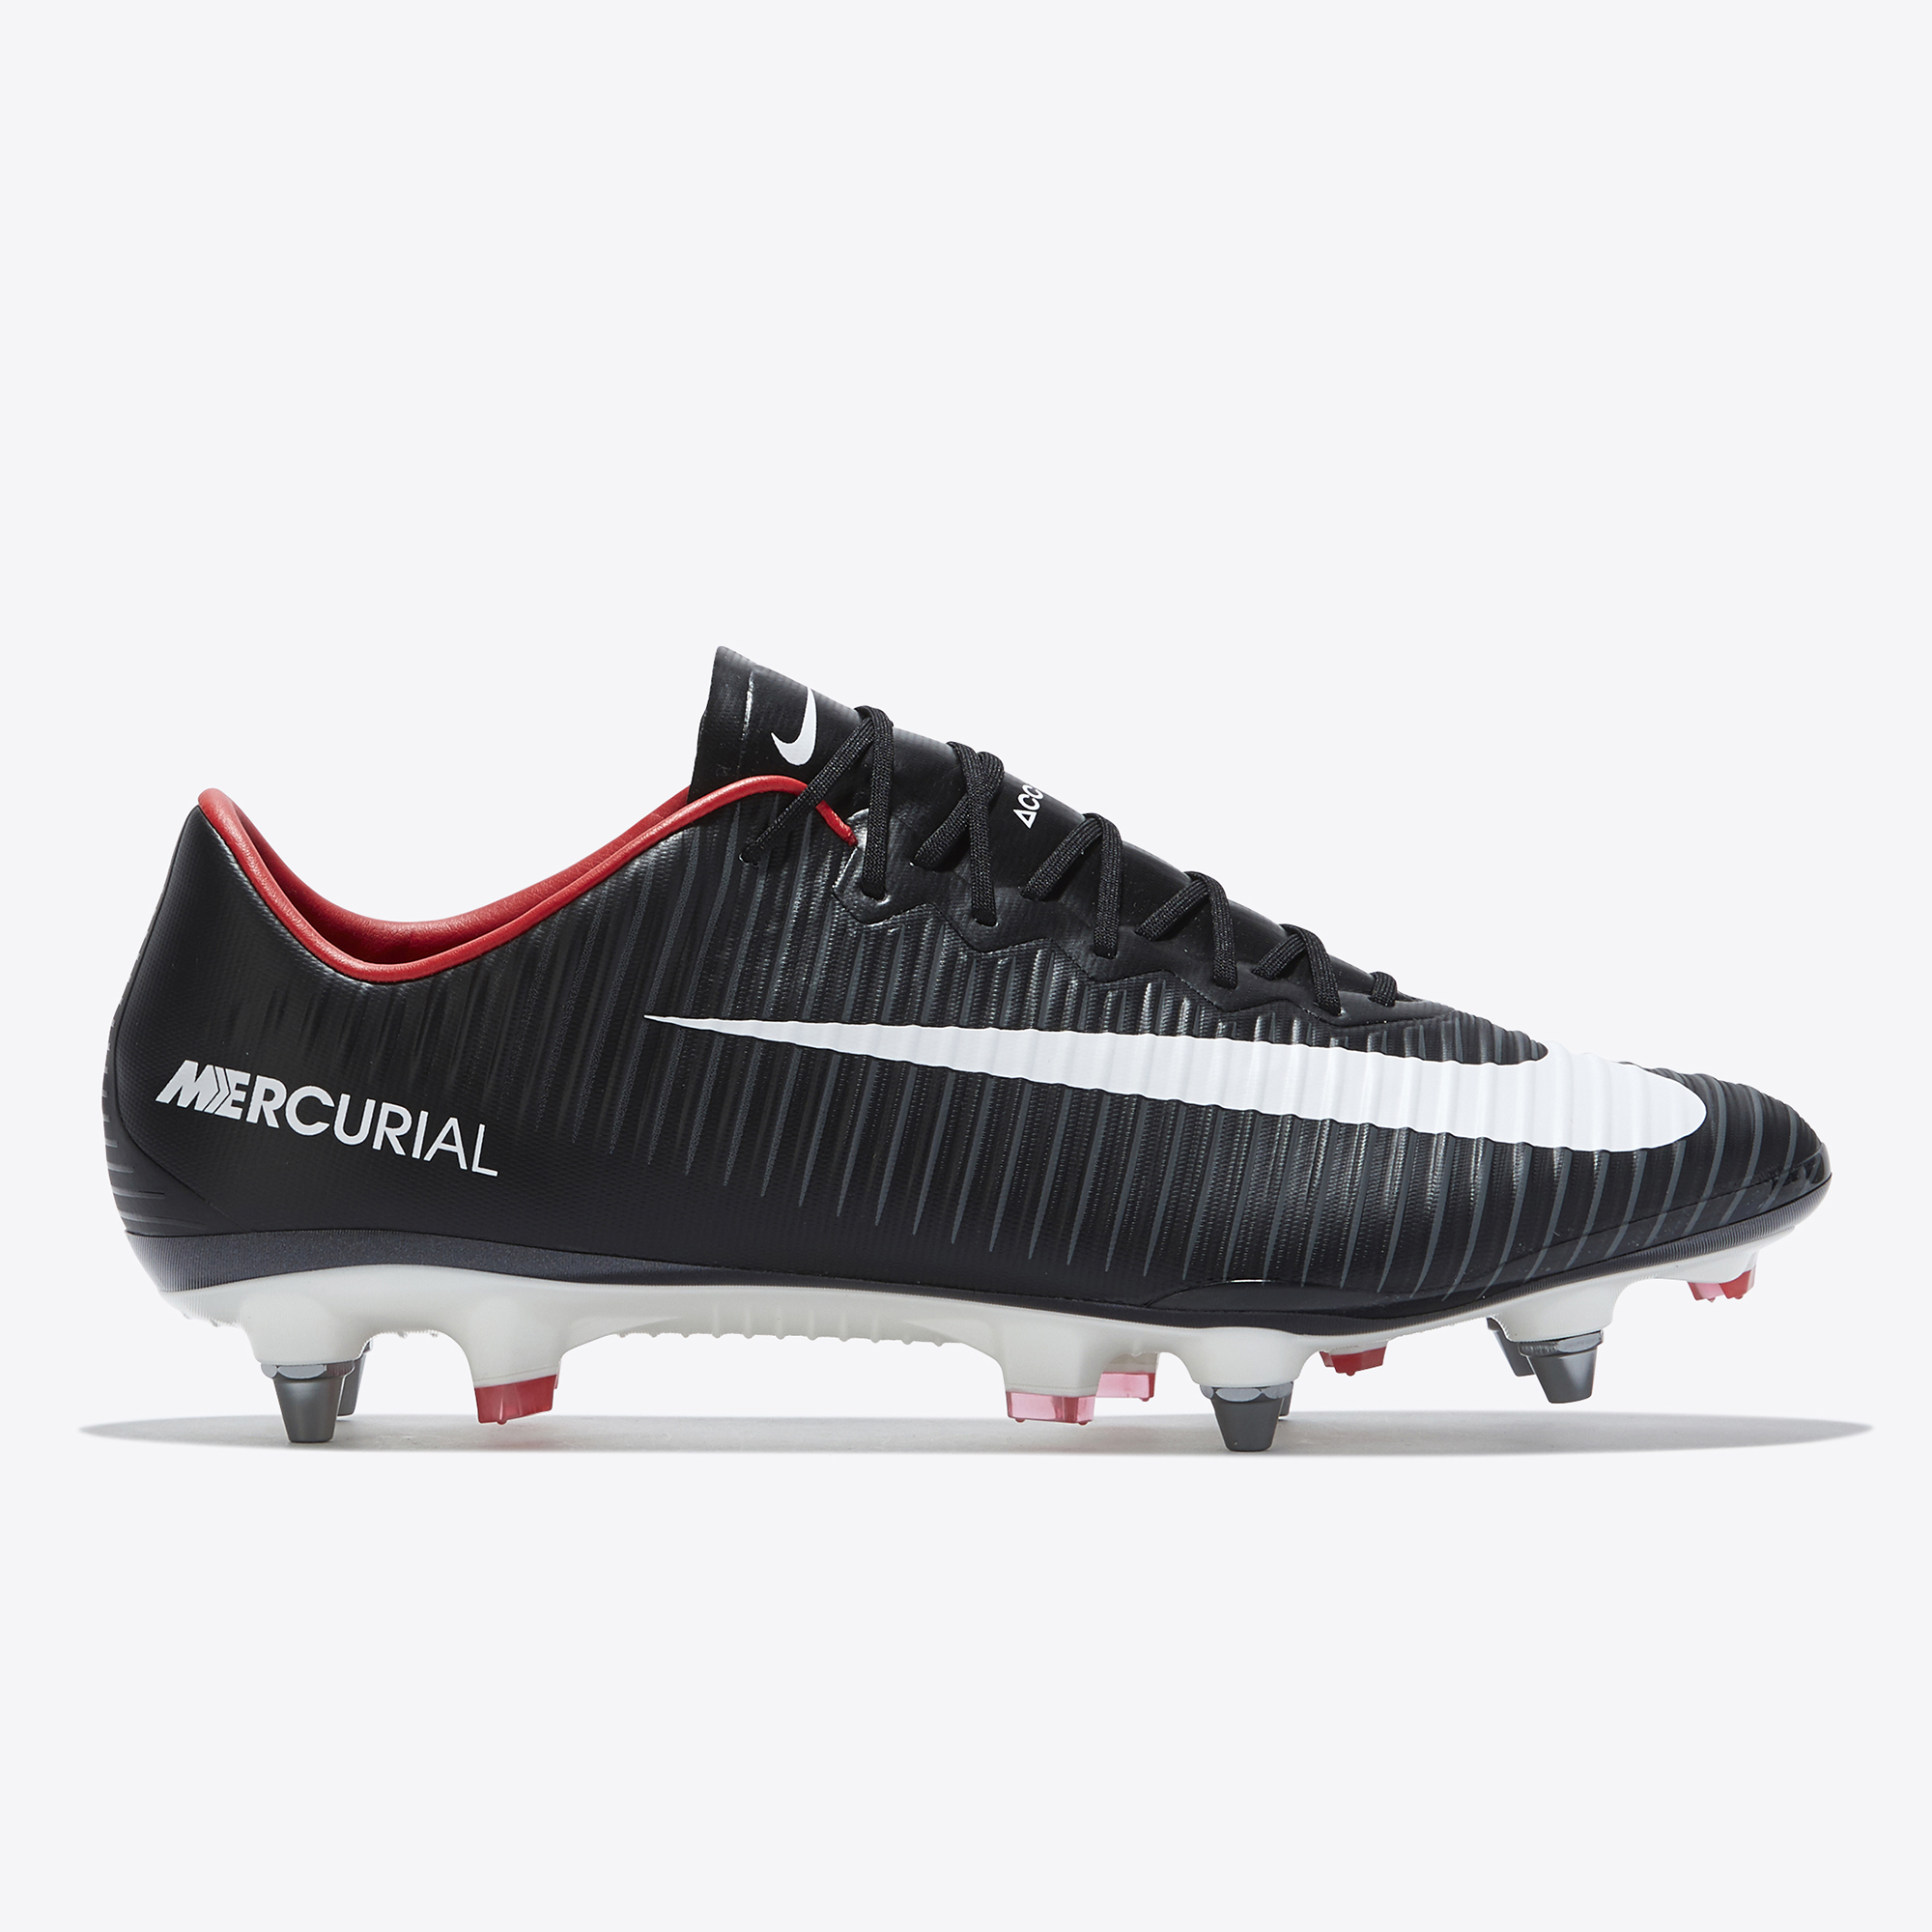 Nike Mercurial Vapor XI Soft Ground Pro Football Boots - Black/White/D